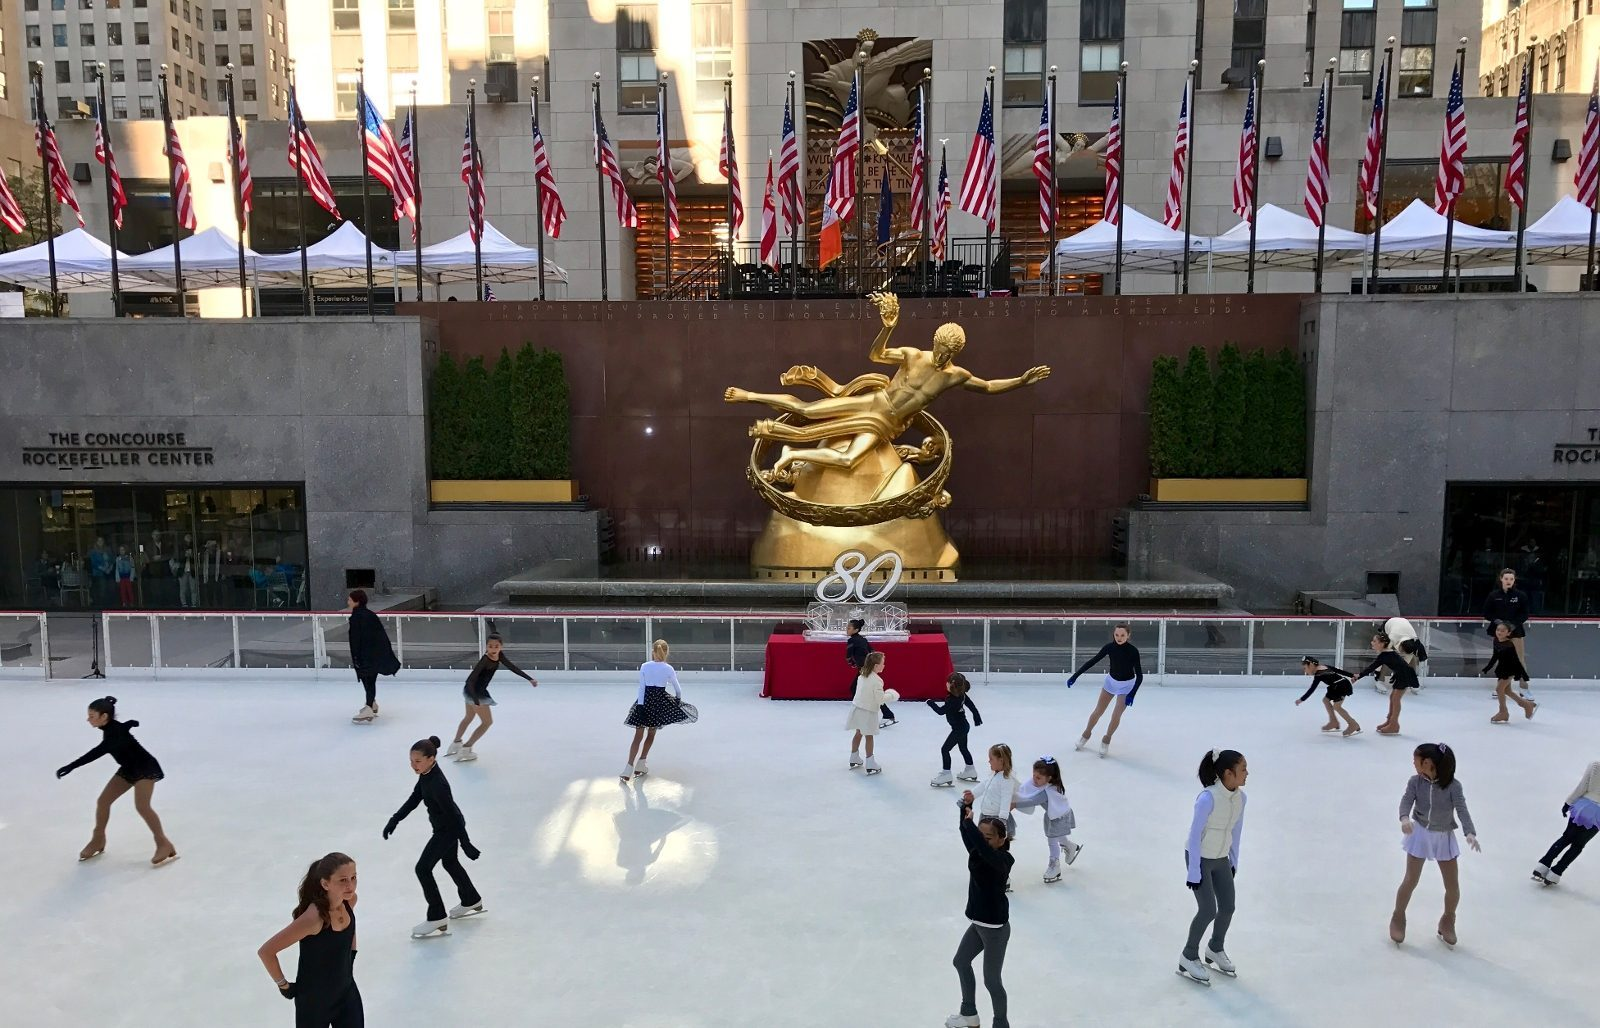 La patinoire du Rockefeller Center